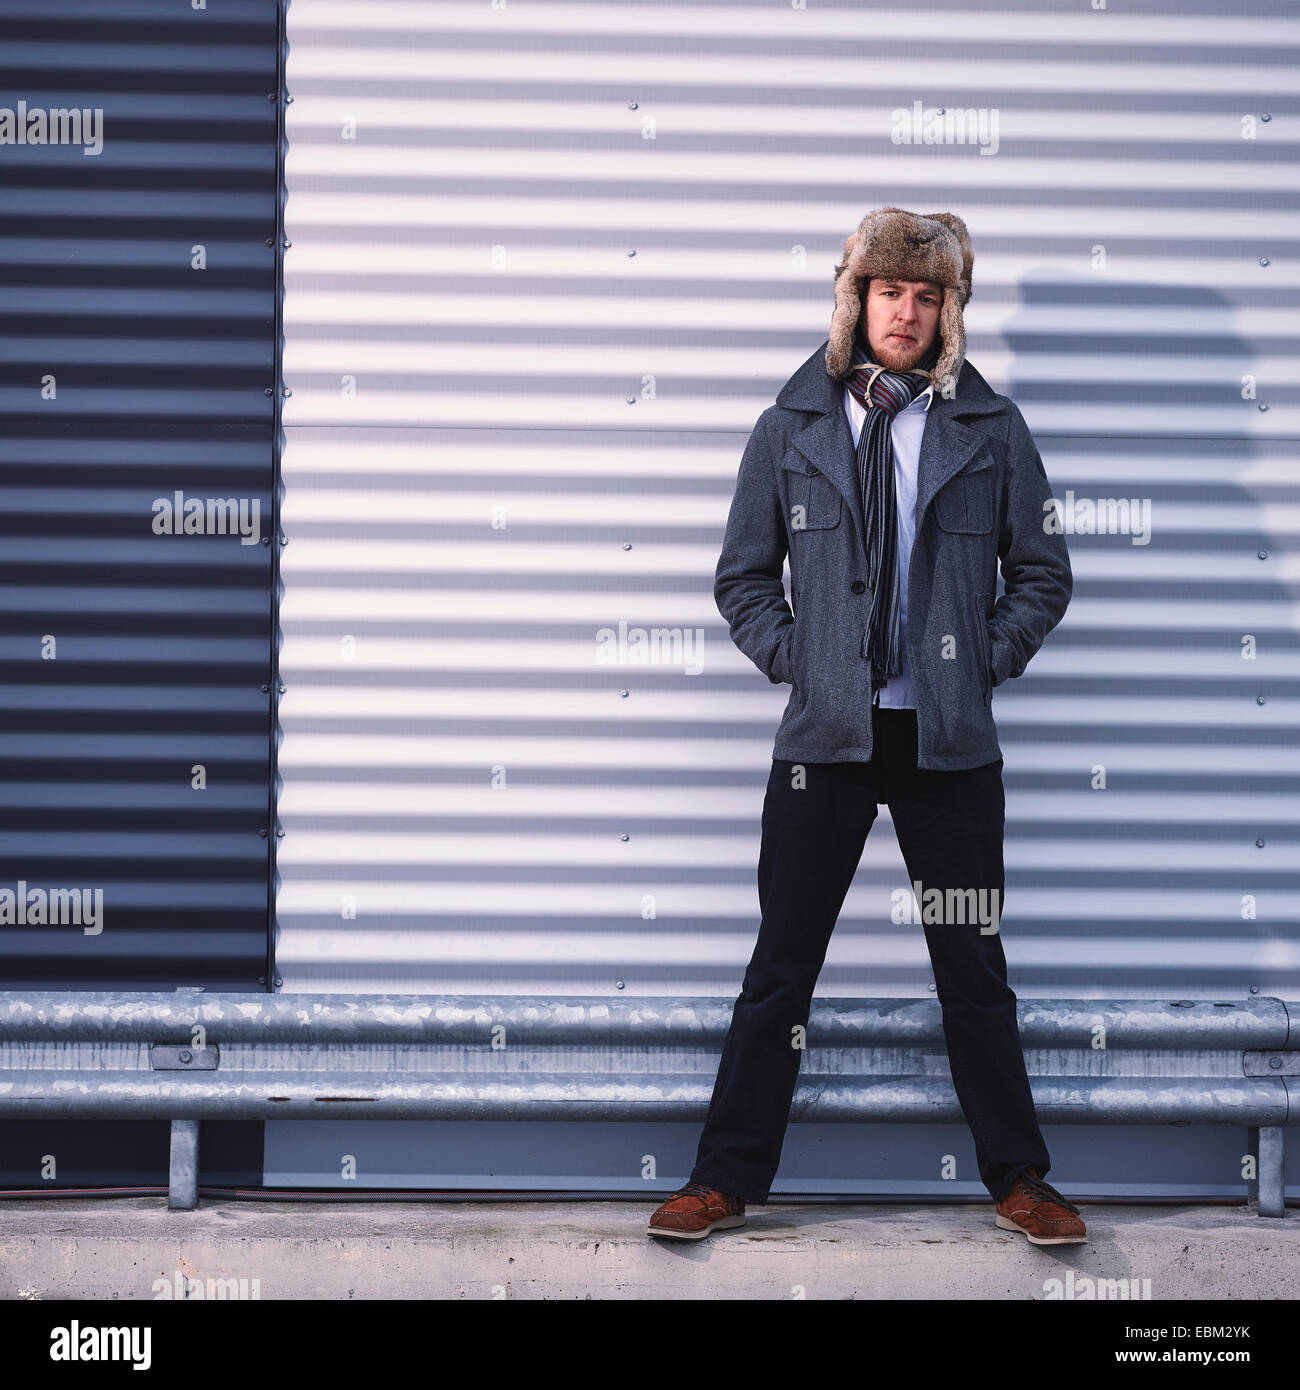 Fashionable young man wearing fur hat and warm overcoat, corrugated iron wall on background - cross processed image - Stock Image